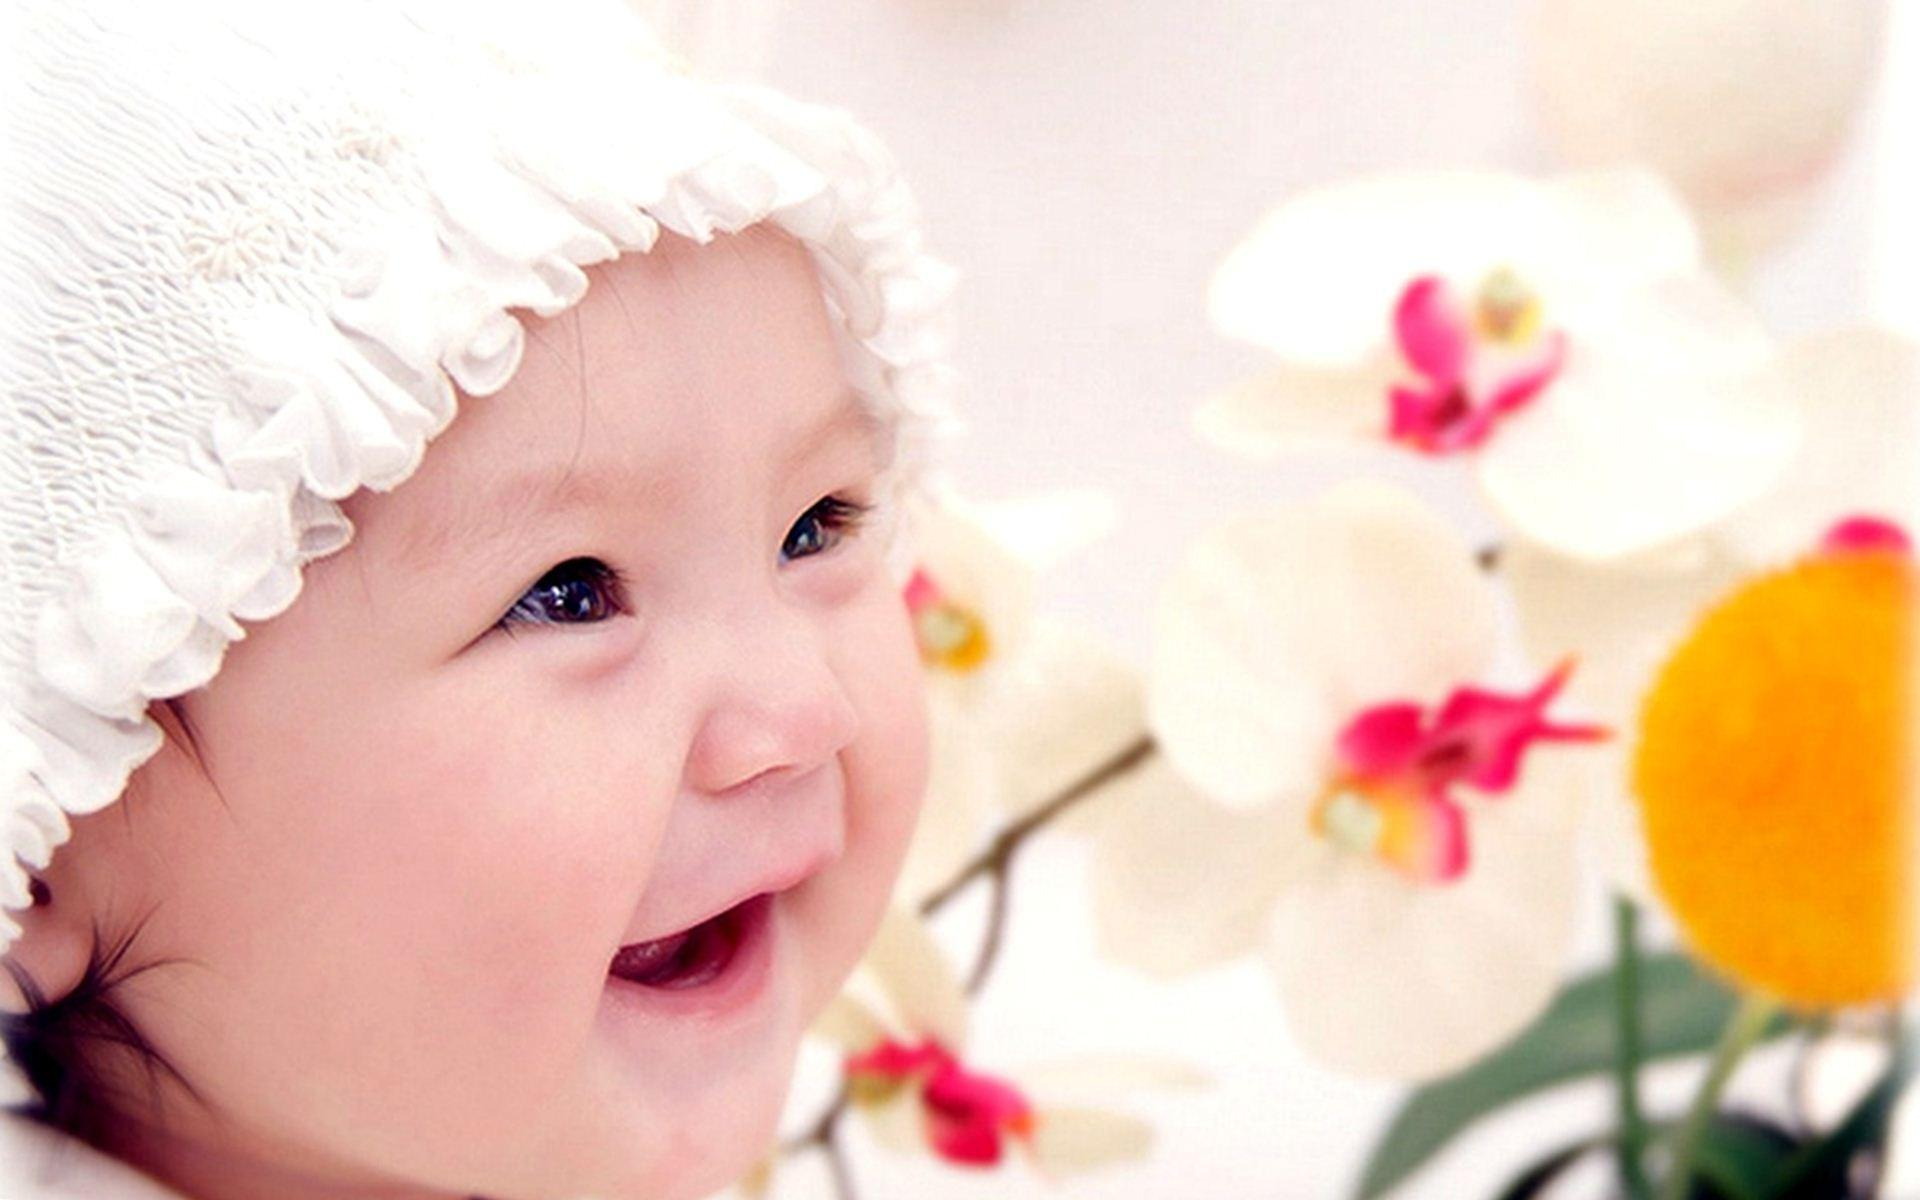 Beautiful babies wallpapers 2015 wallpaper cave for Boby wallpaper